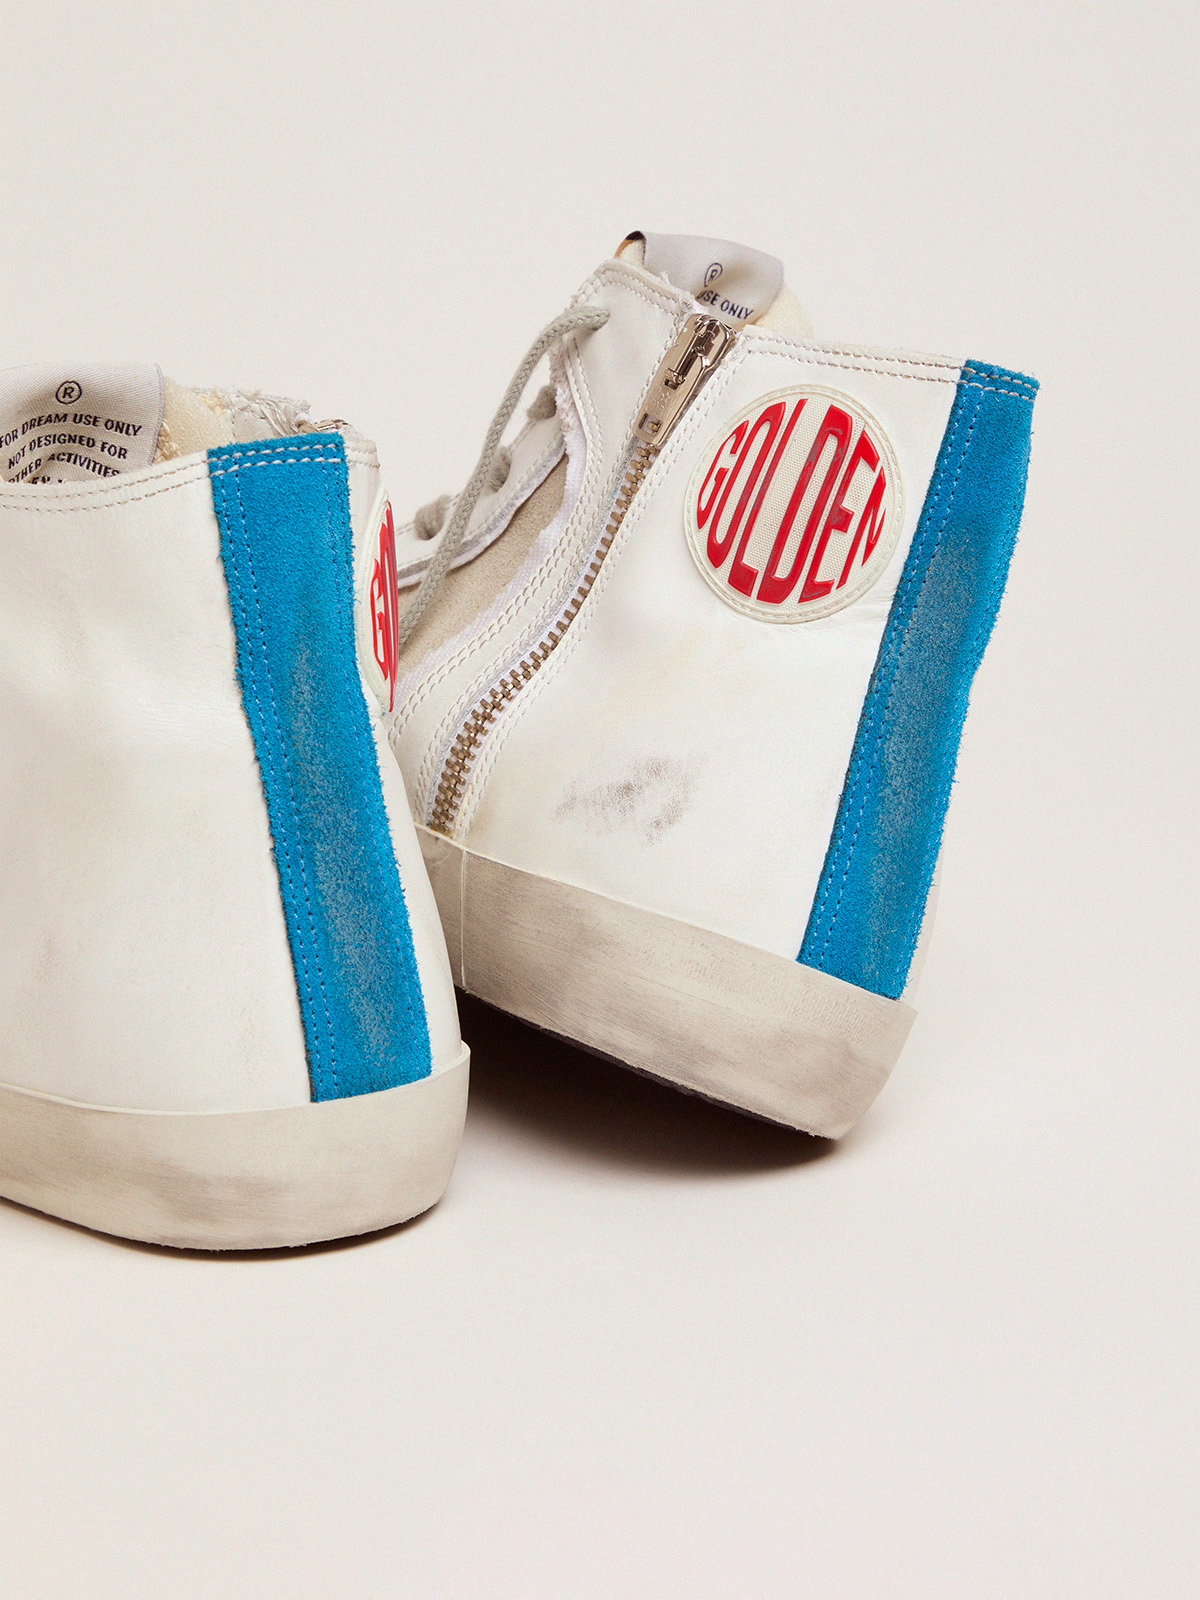 Golden Goose - Women's Limited Edition blue and white Francy sneakers in